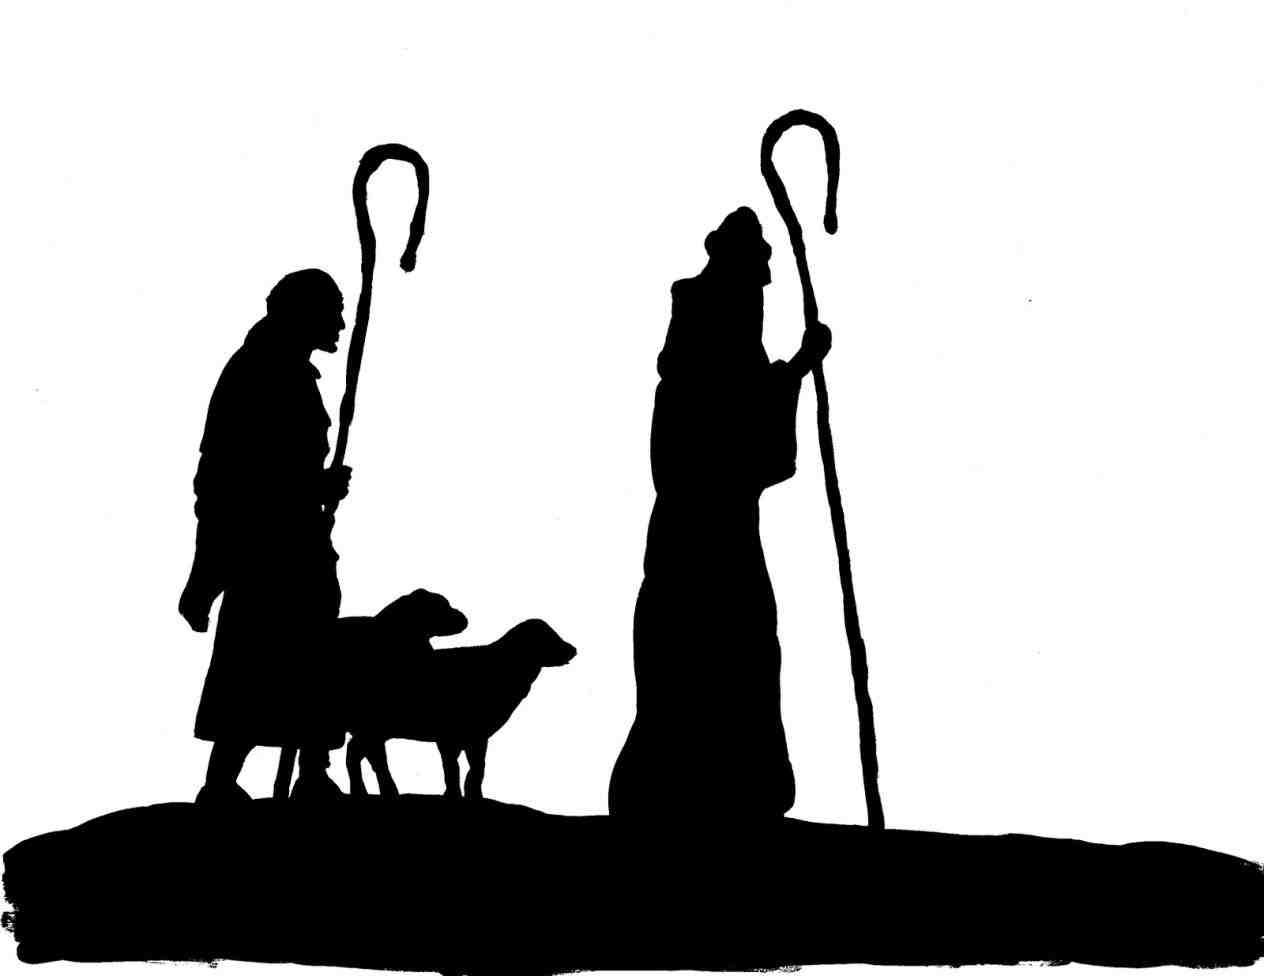 1264x976 Christmas Wisemen Clipart Wise Men Nativity Silhouette U Clip Art